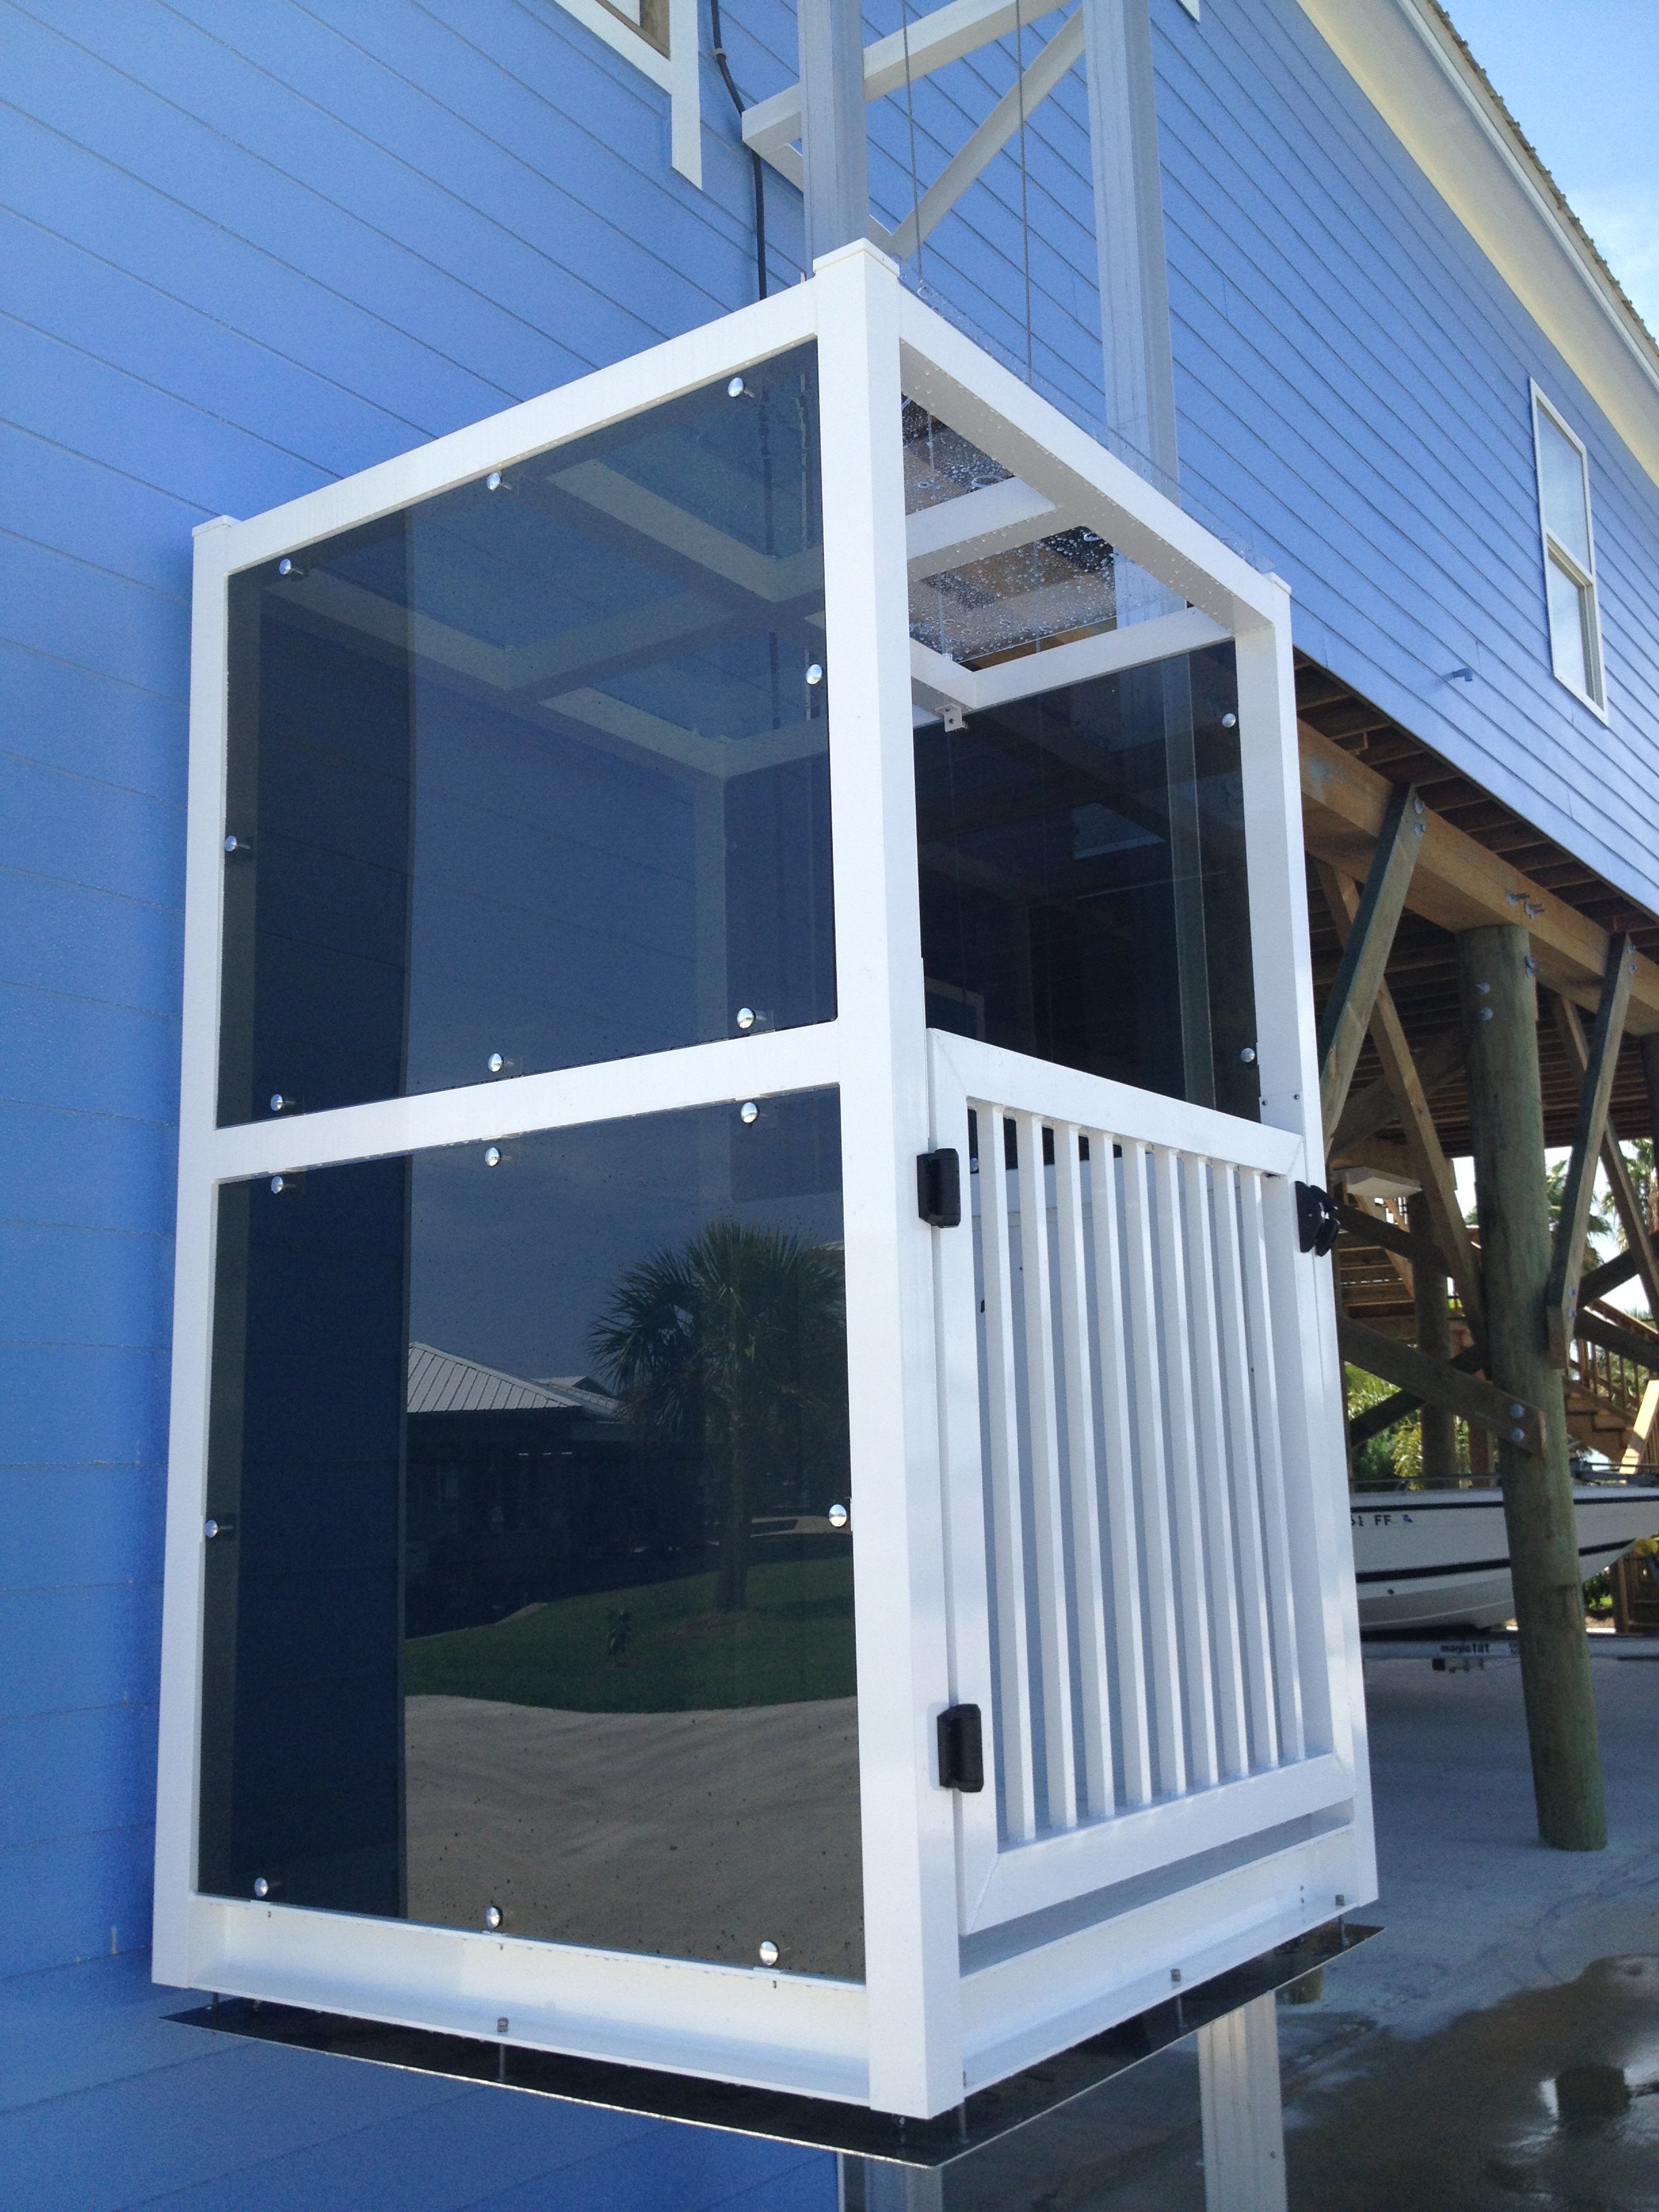 Exterior Elevators Residential Pictures To Pin On Pinterest Pinsdaddy